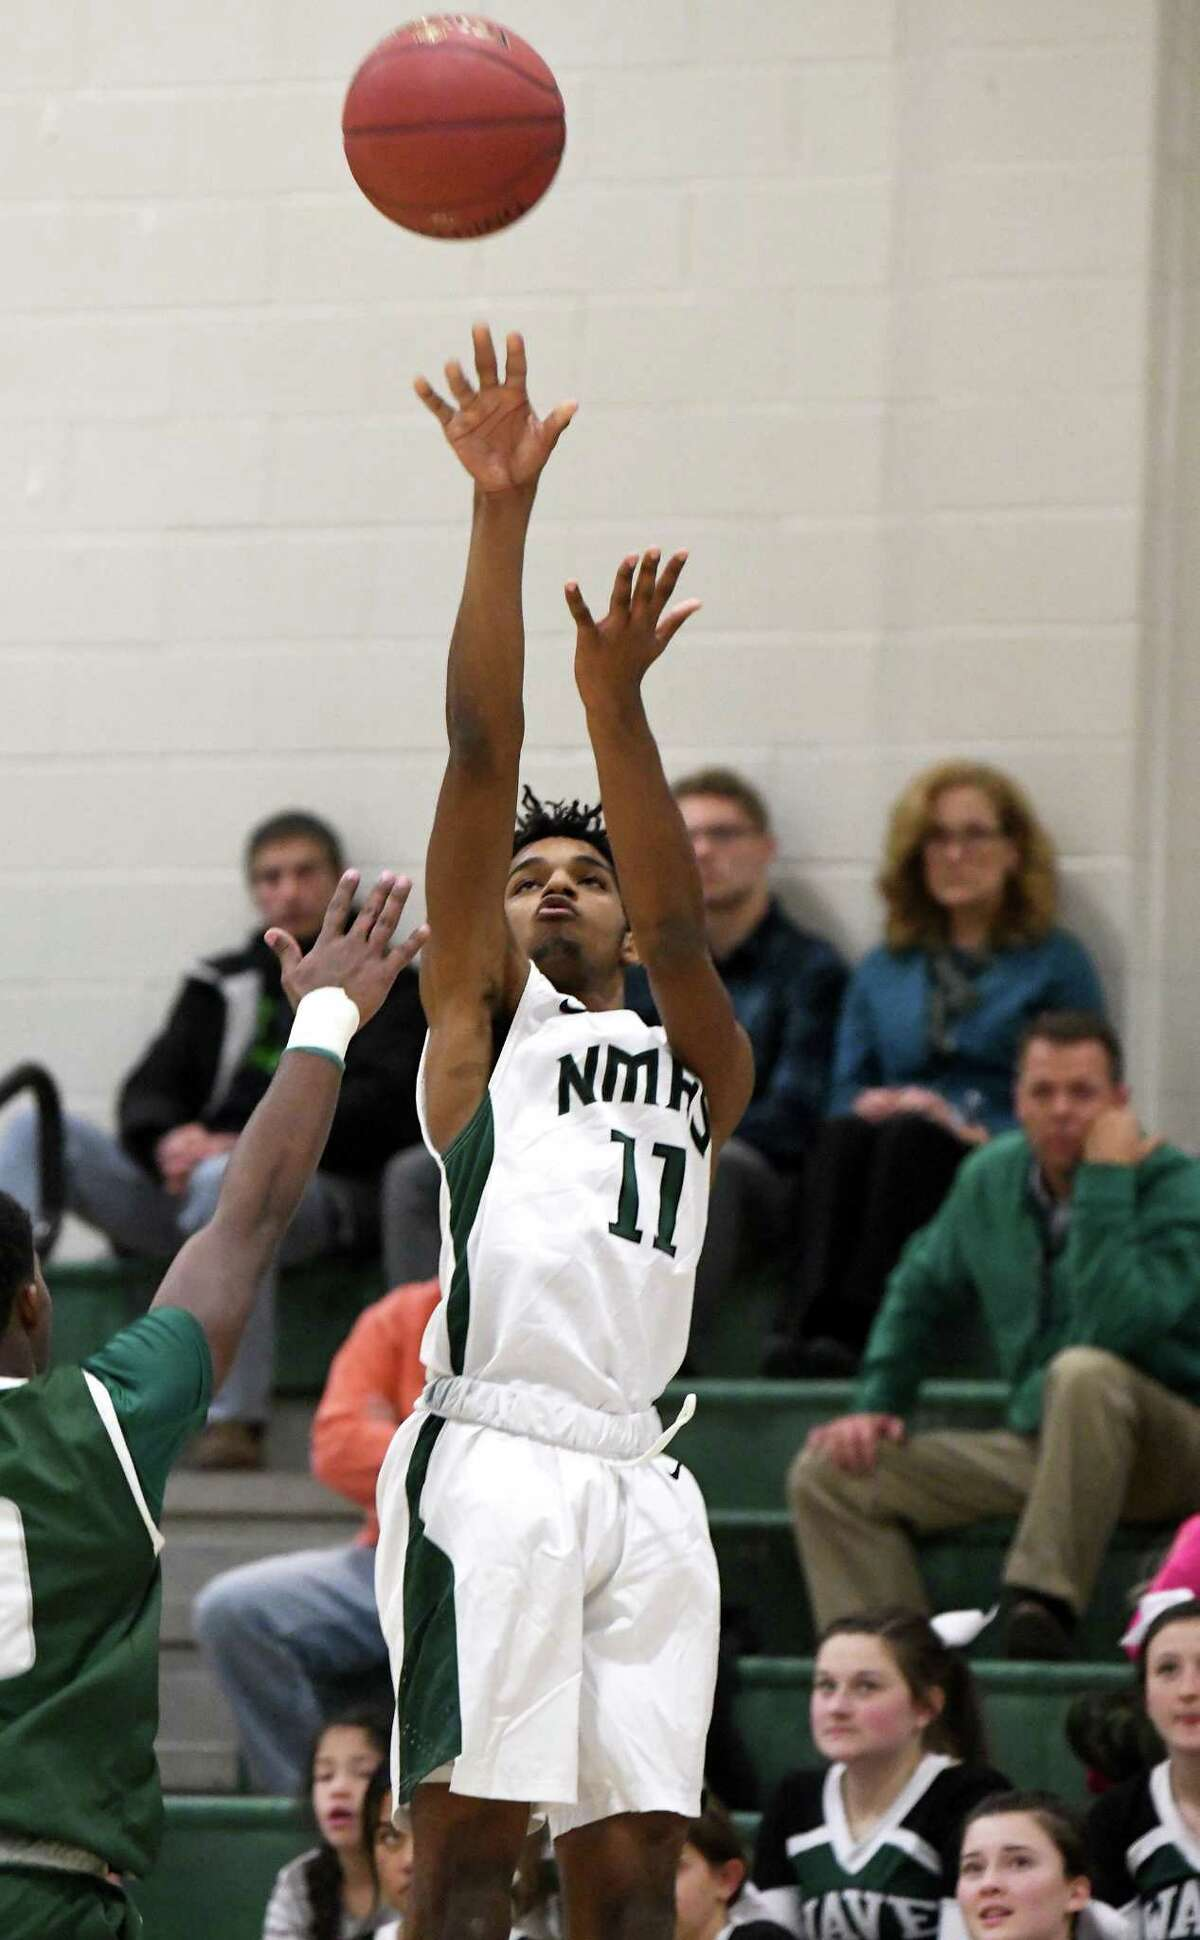 New Milford's Matthew Brevard makes a shot during the New Milford vs Norwalk boys basketball game at New Milford, Dec. 18, 2017.